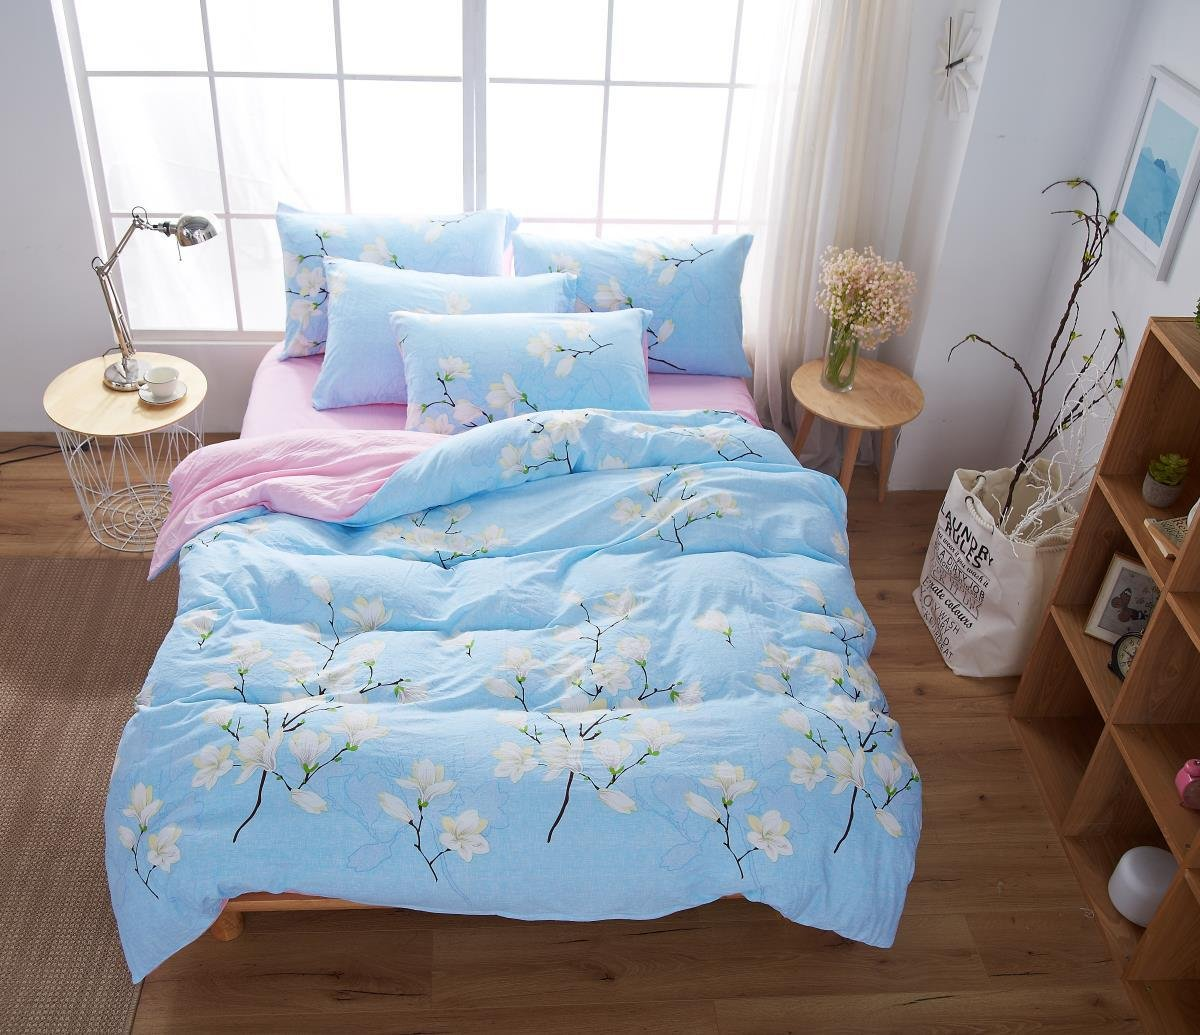 YIweNi Cotton 4-piece _ No copy simple and good drugs Washed Cotton 4 piece bedding set, Love Love flowers, a ,200230cm —